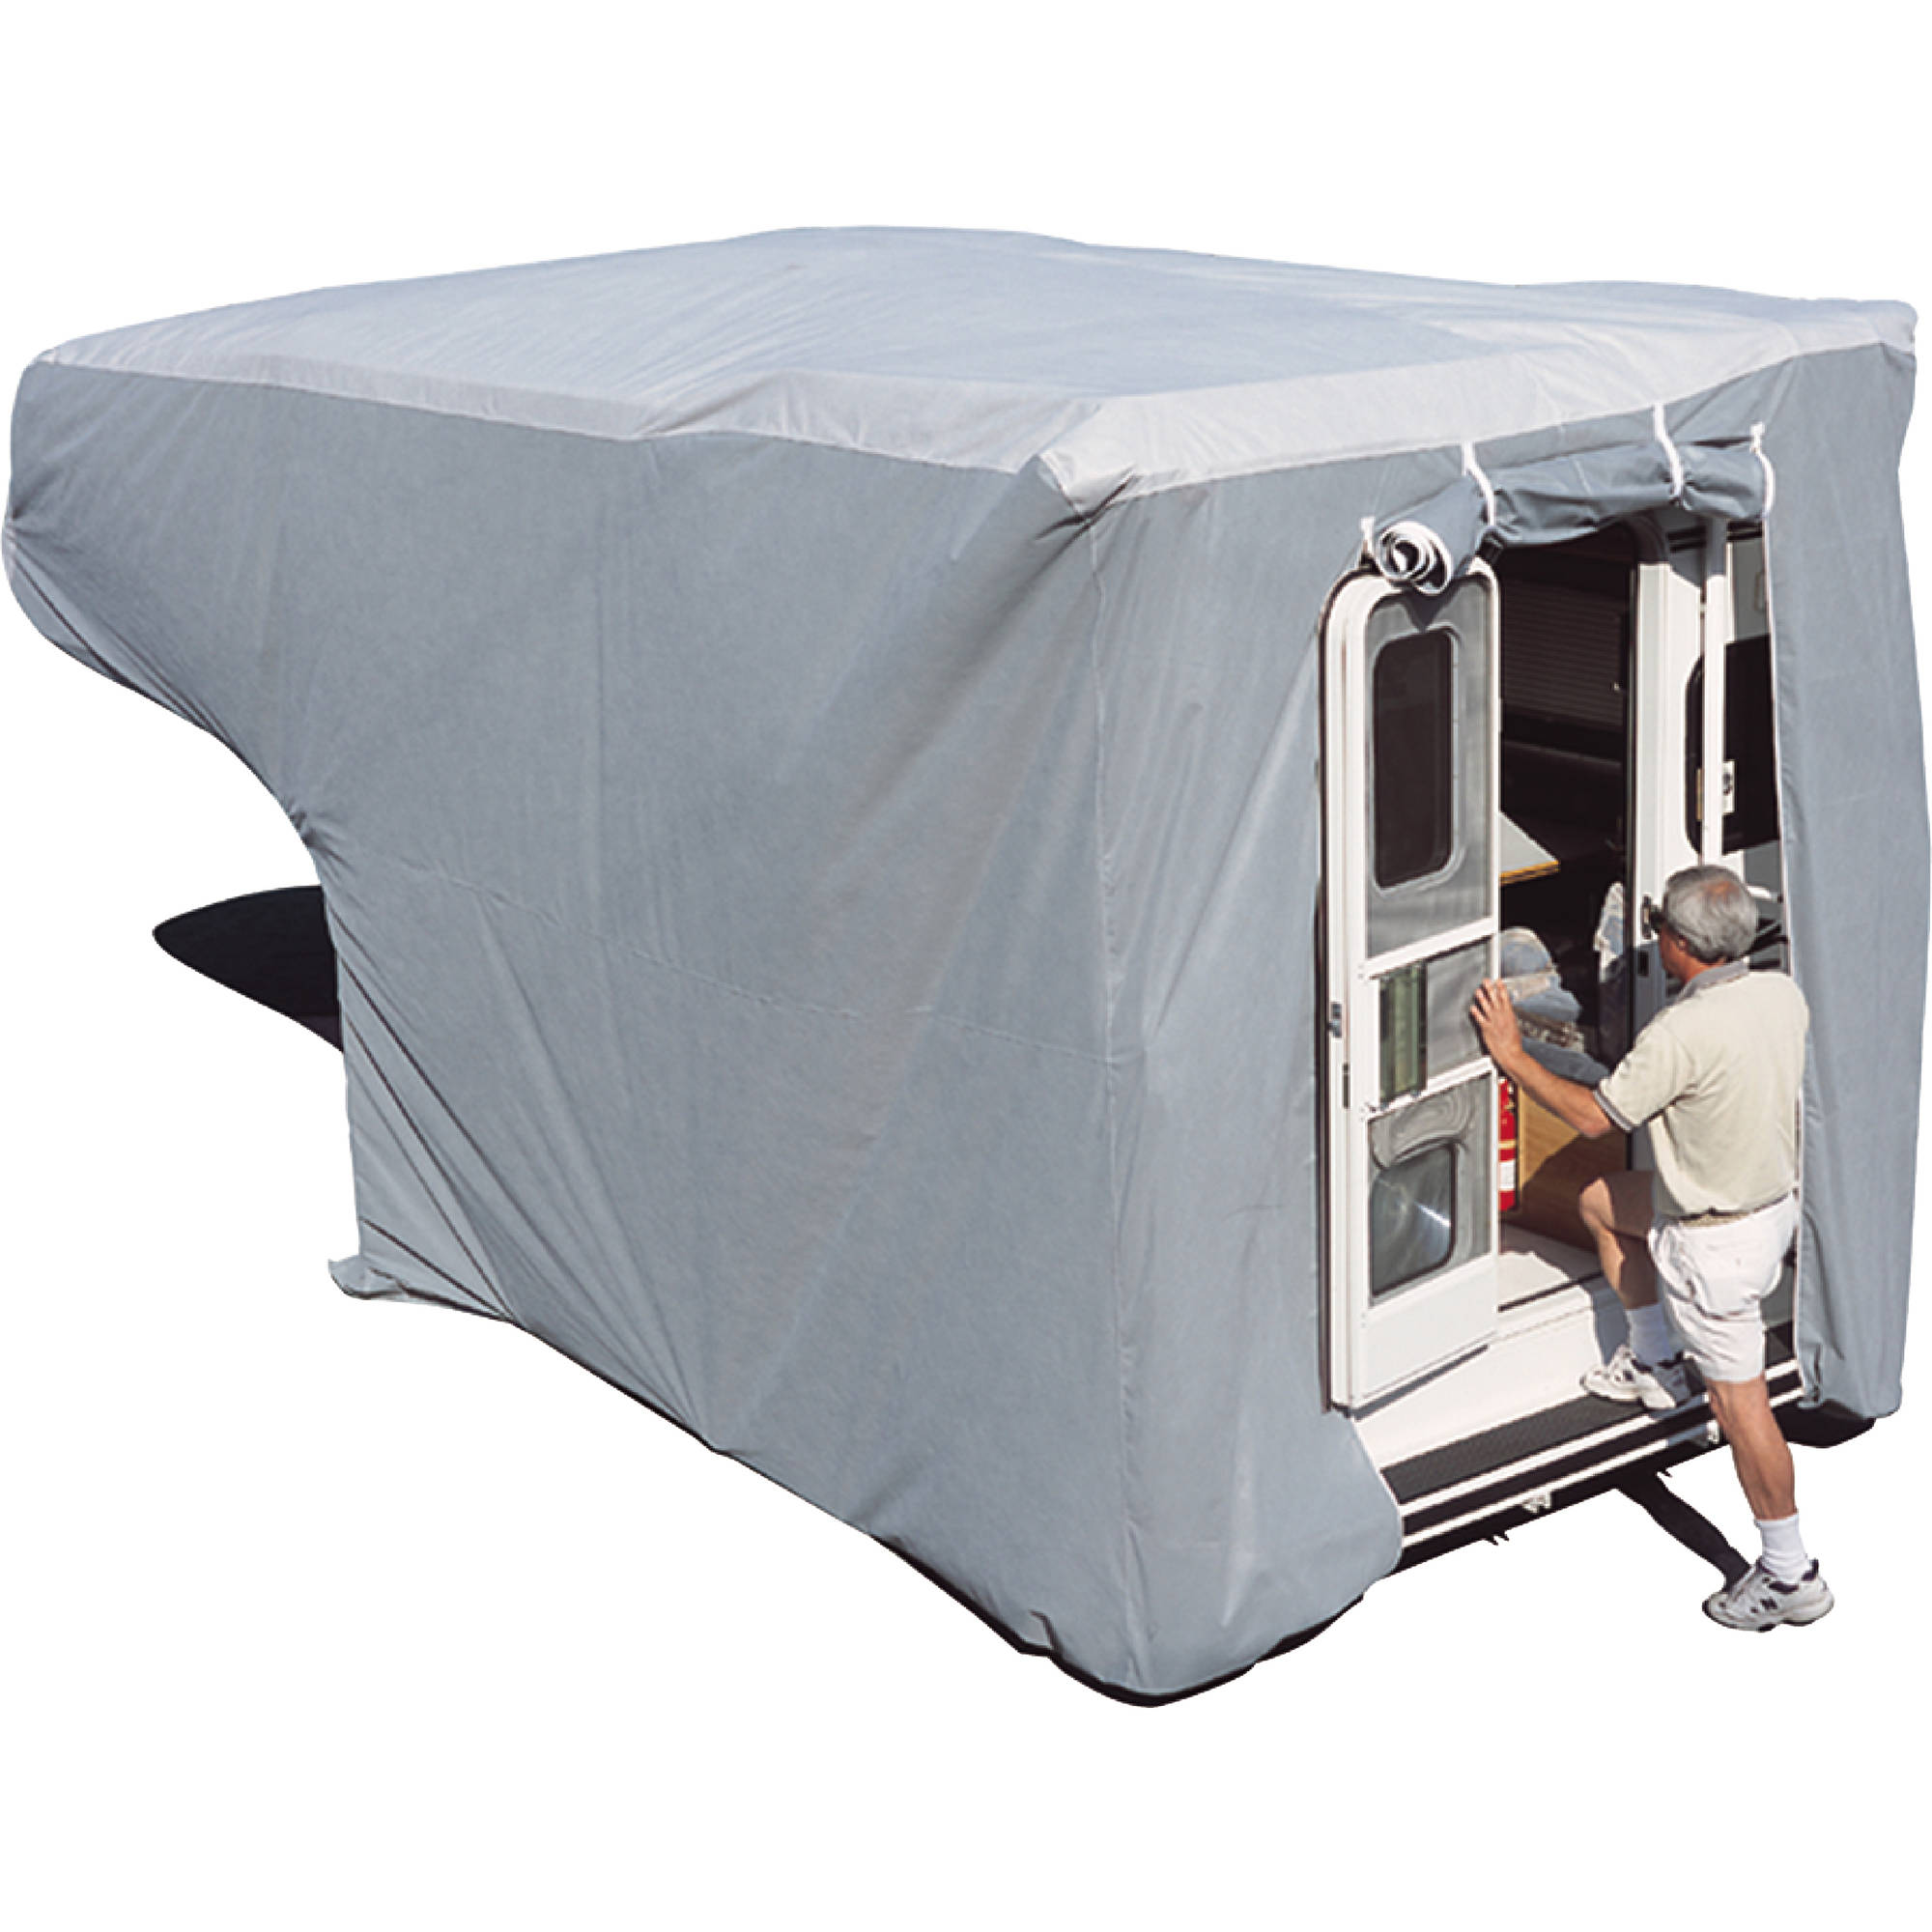 ADCO Truck Camper Cover, Grey SFS AquaShed Top/Grey Polypropylene Sides